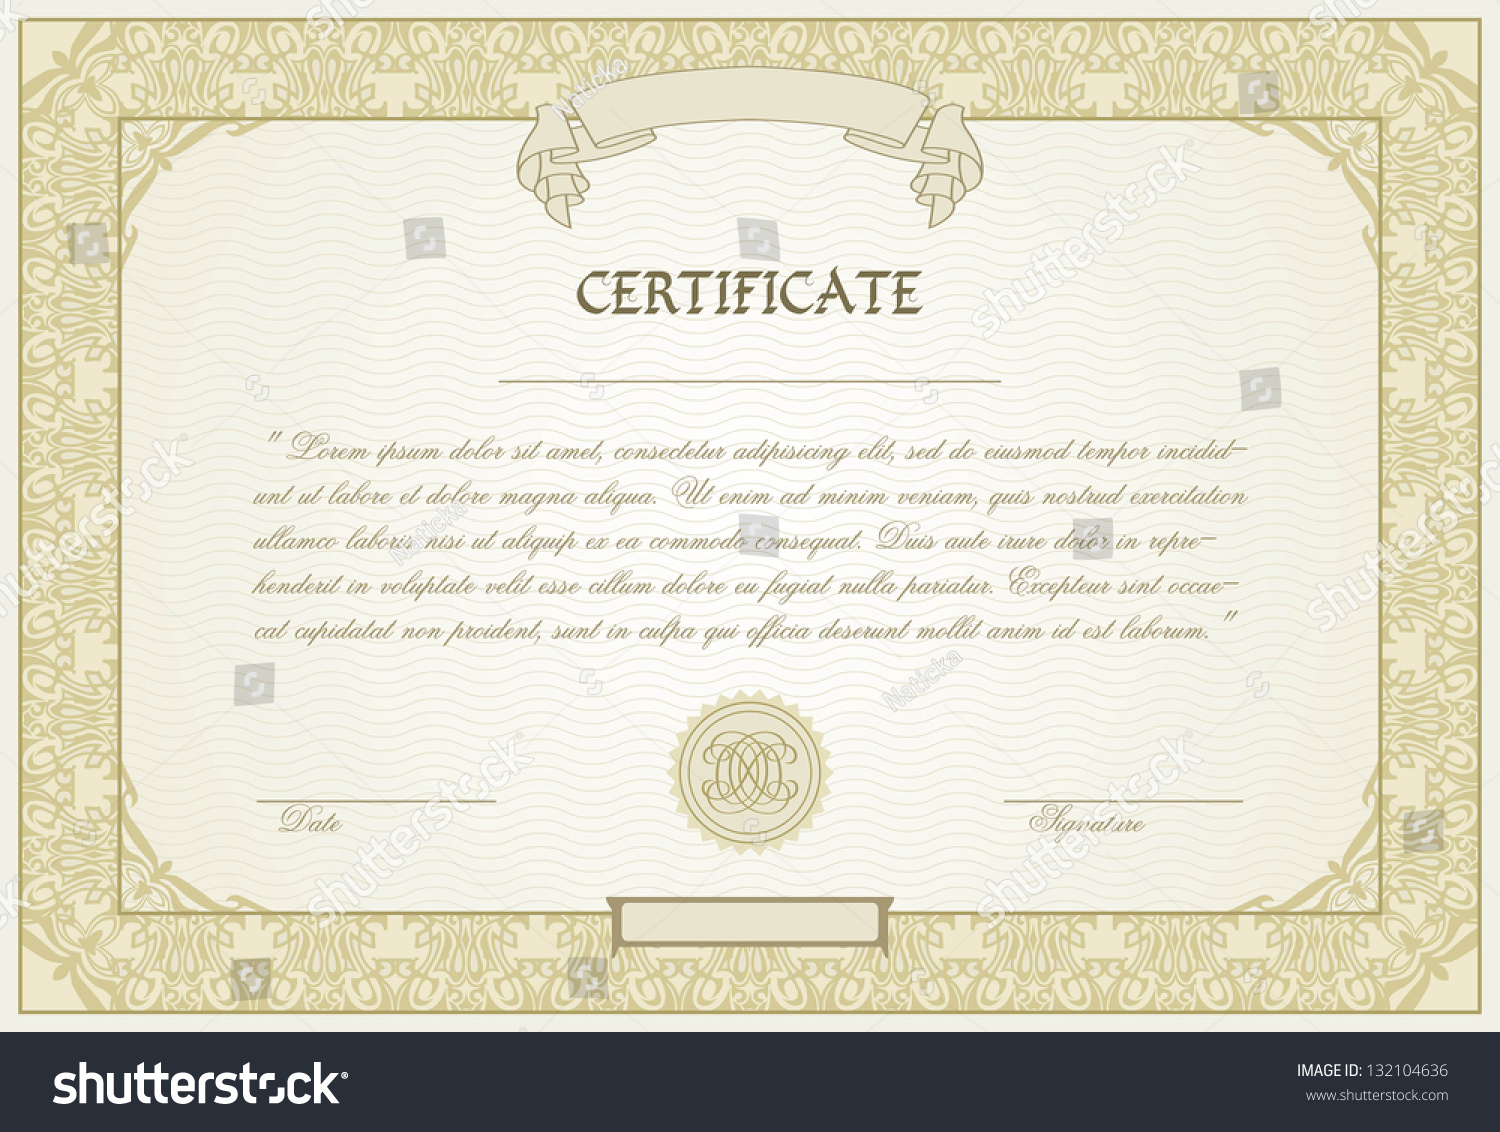 Stock Share Certificate Template stock certificates llc – Blank Share Certificate